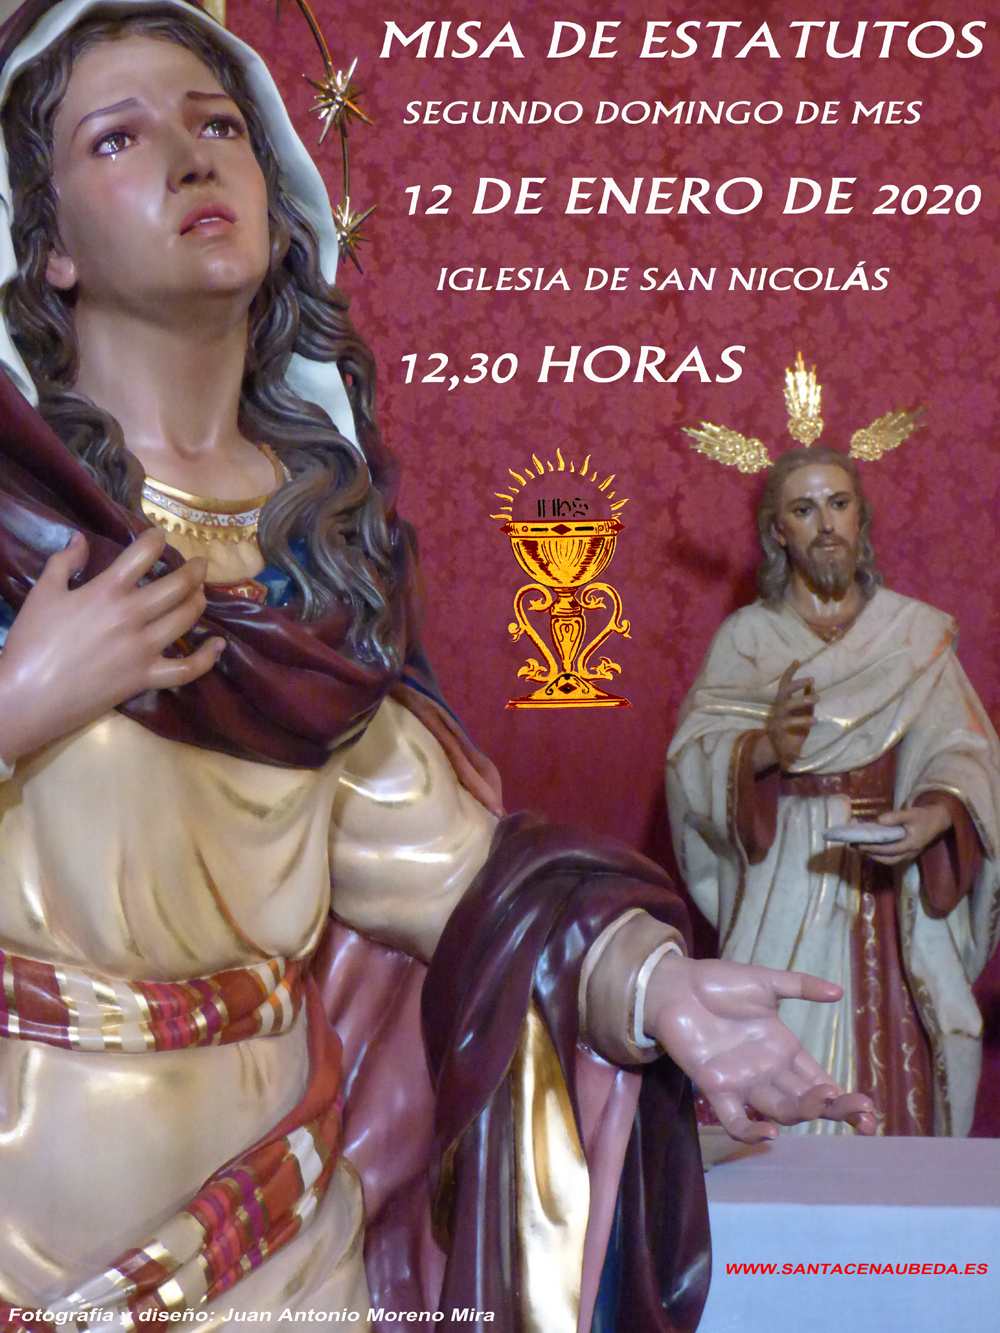 misa estatutos enero 2020 web